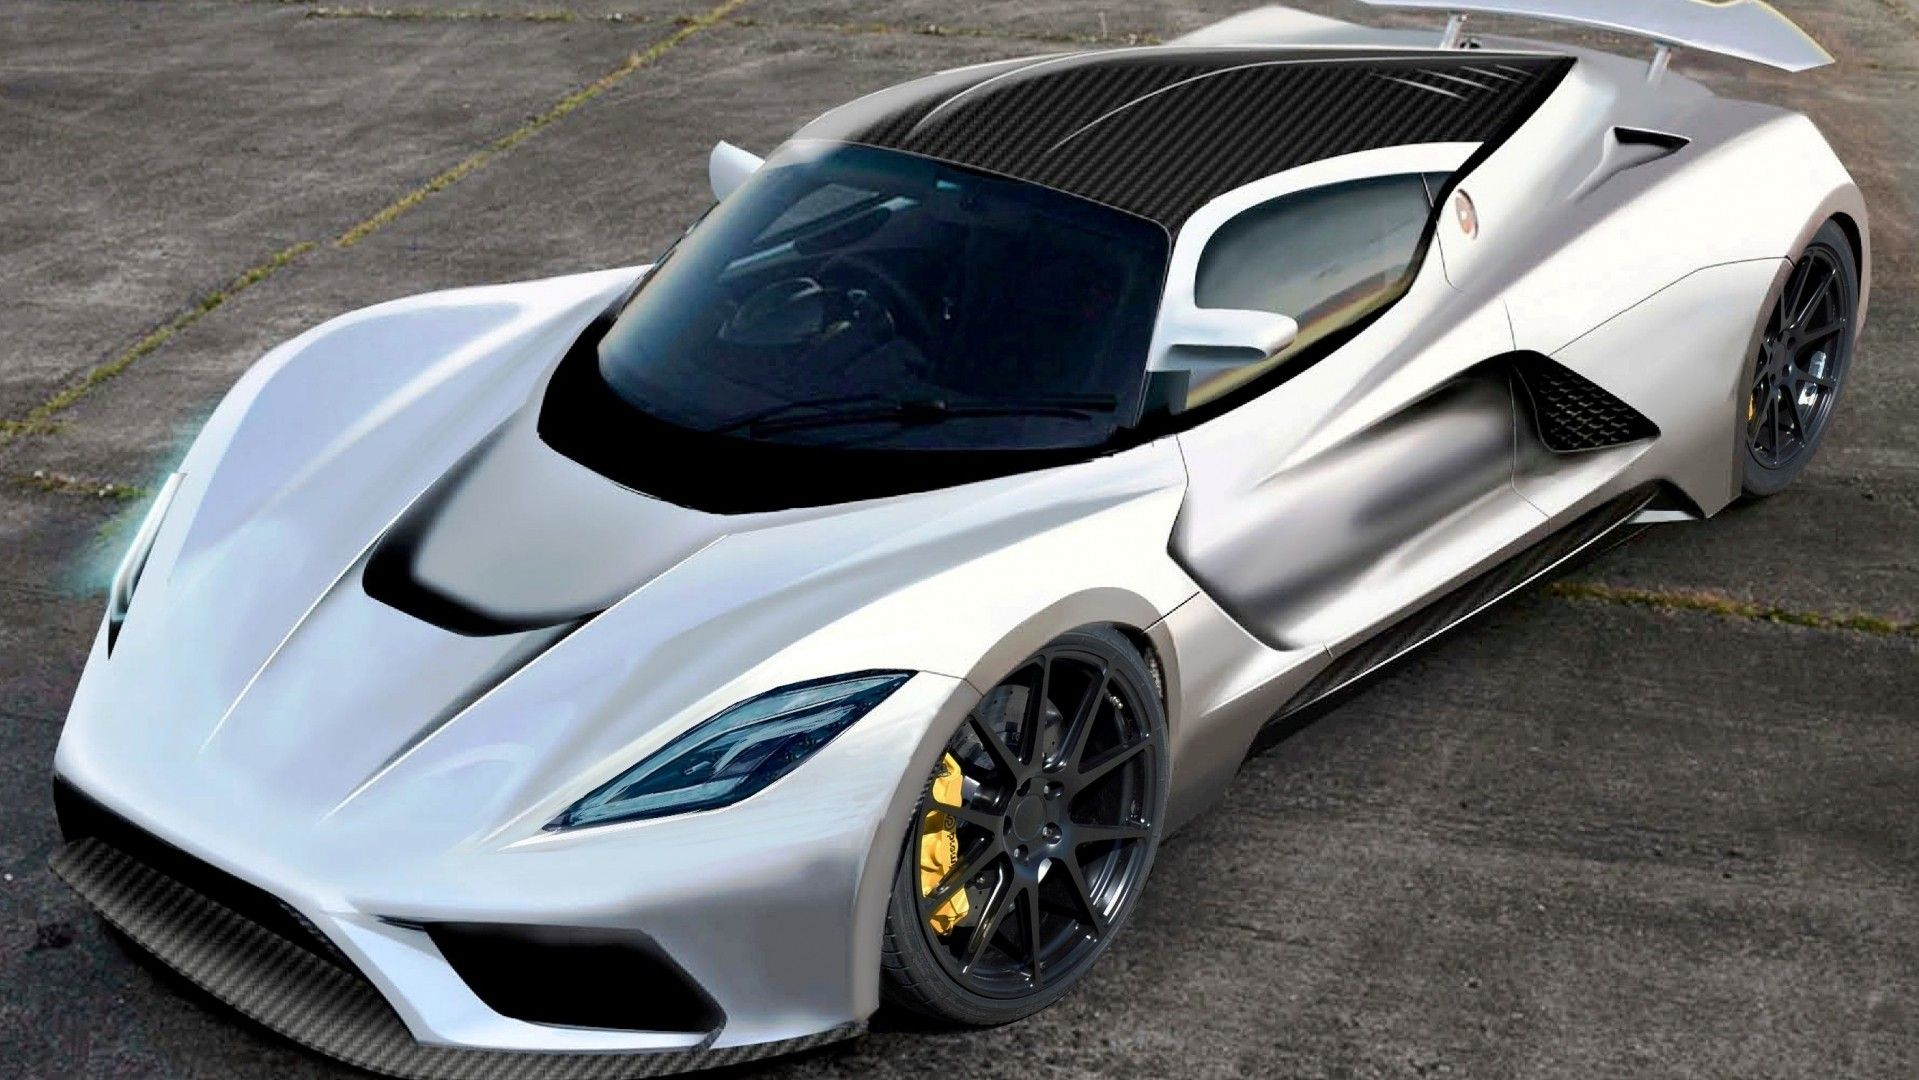 Ultra Rare Super Cars Hd Wallpapers Theme Super Cars Hennessey Hennessey Venom Gt